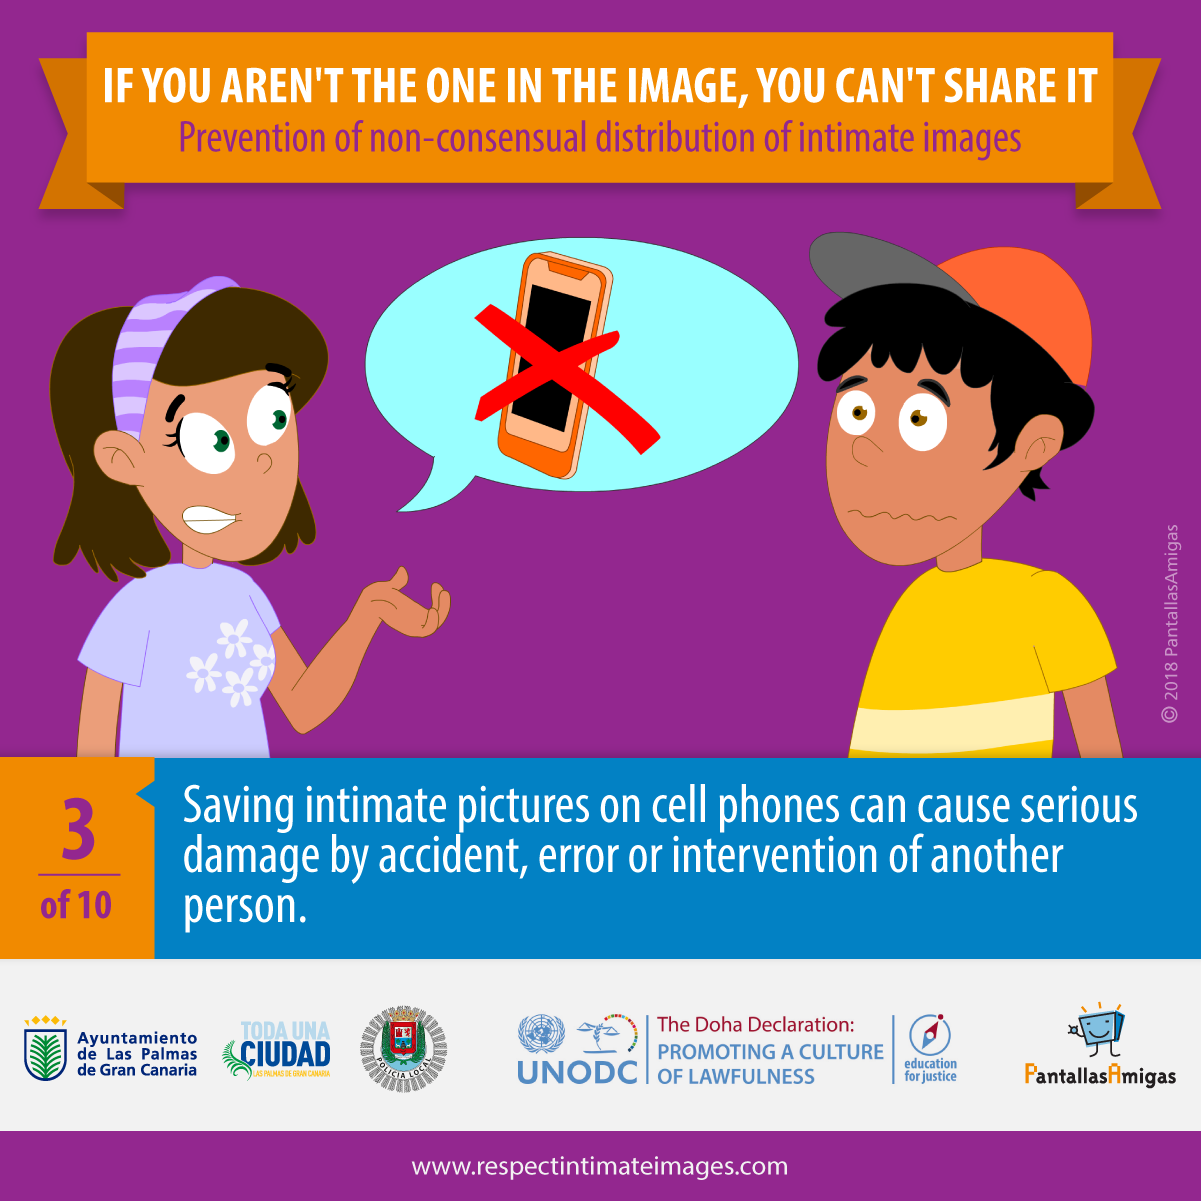 Saving intimate pictures on cell phones can cause serious damage by accident, error or intervention of another person.